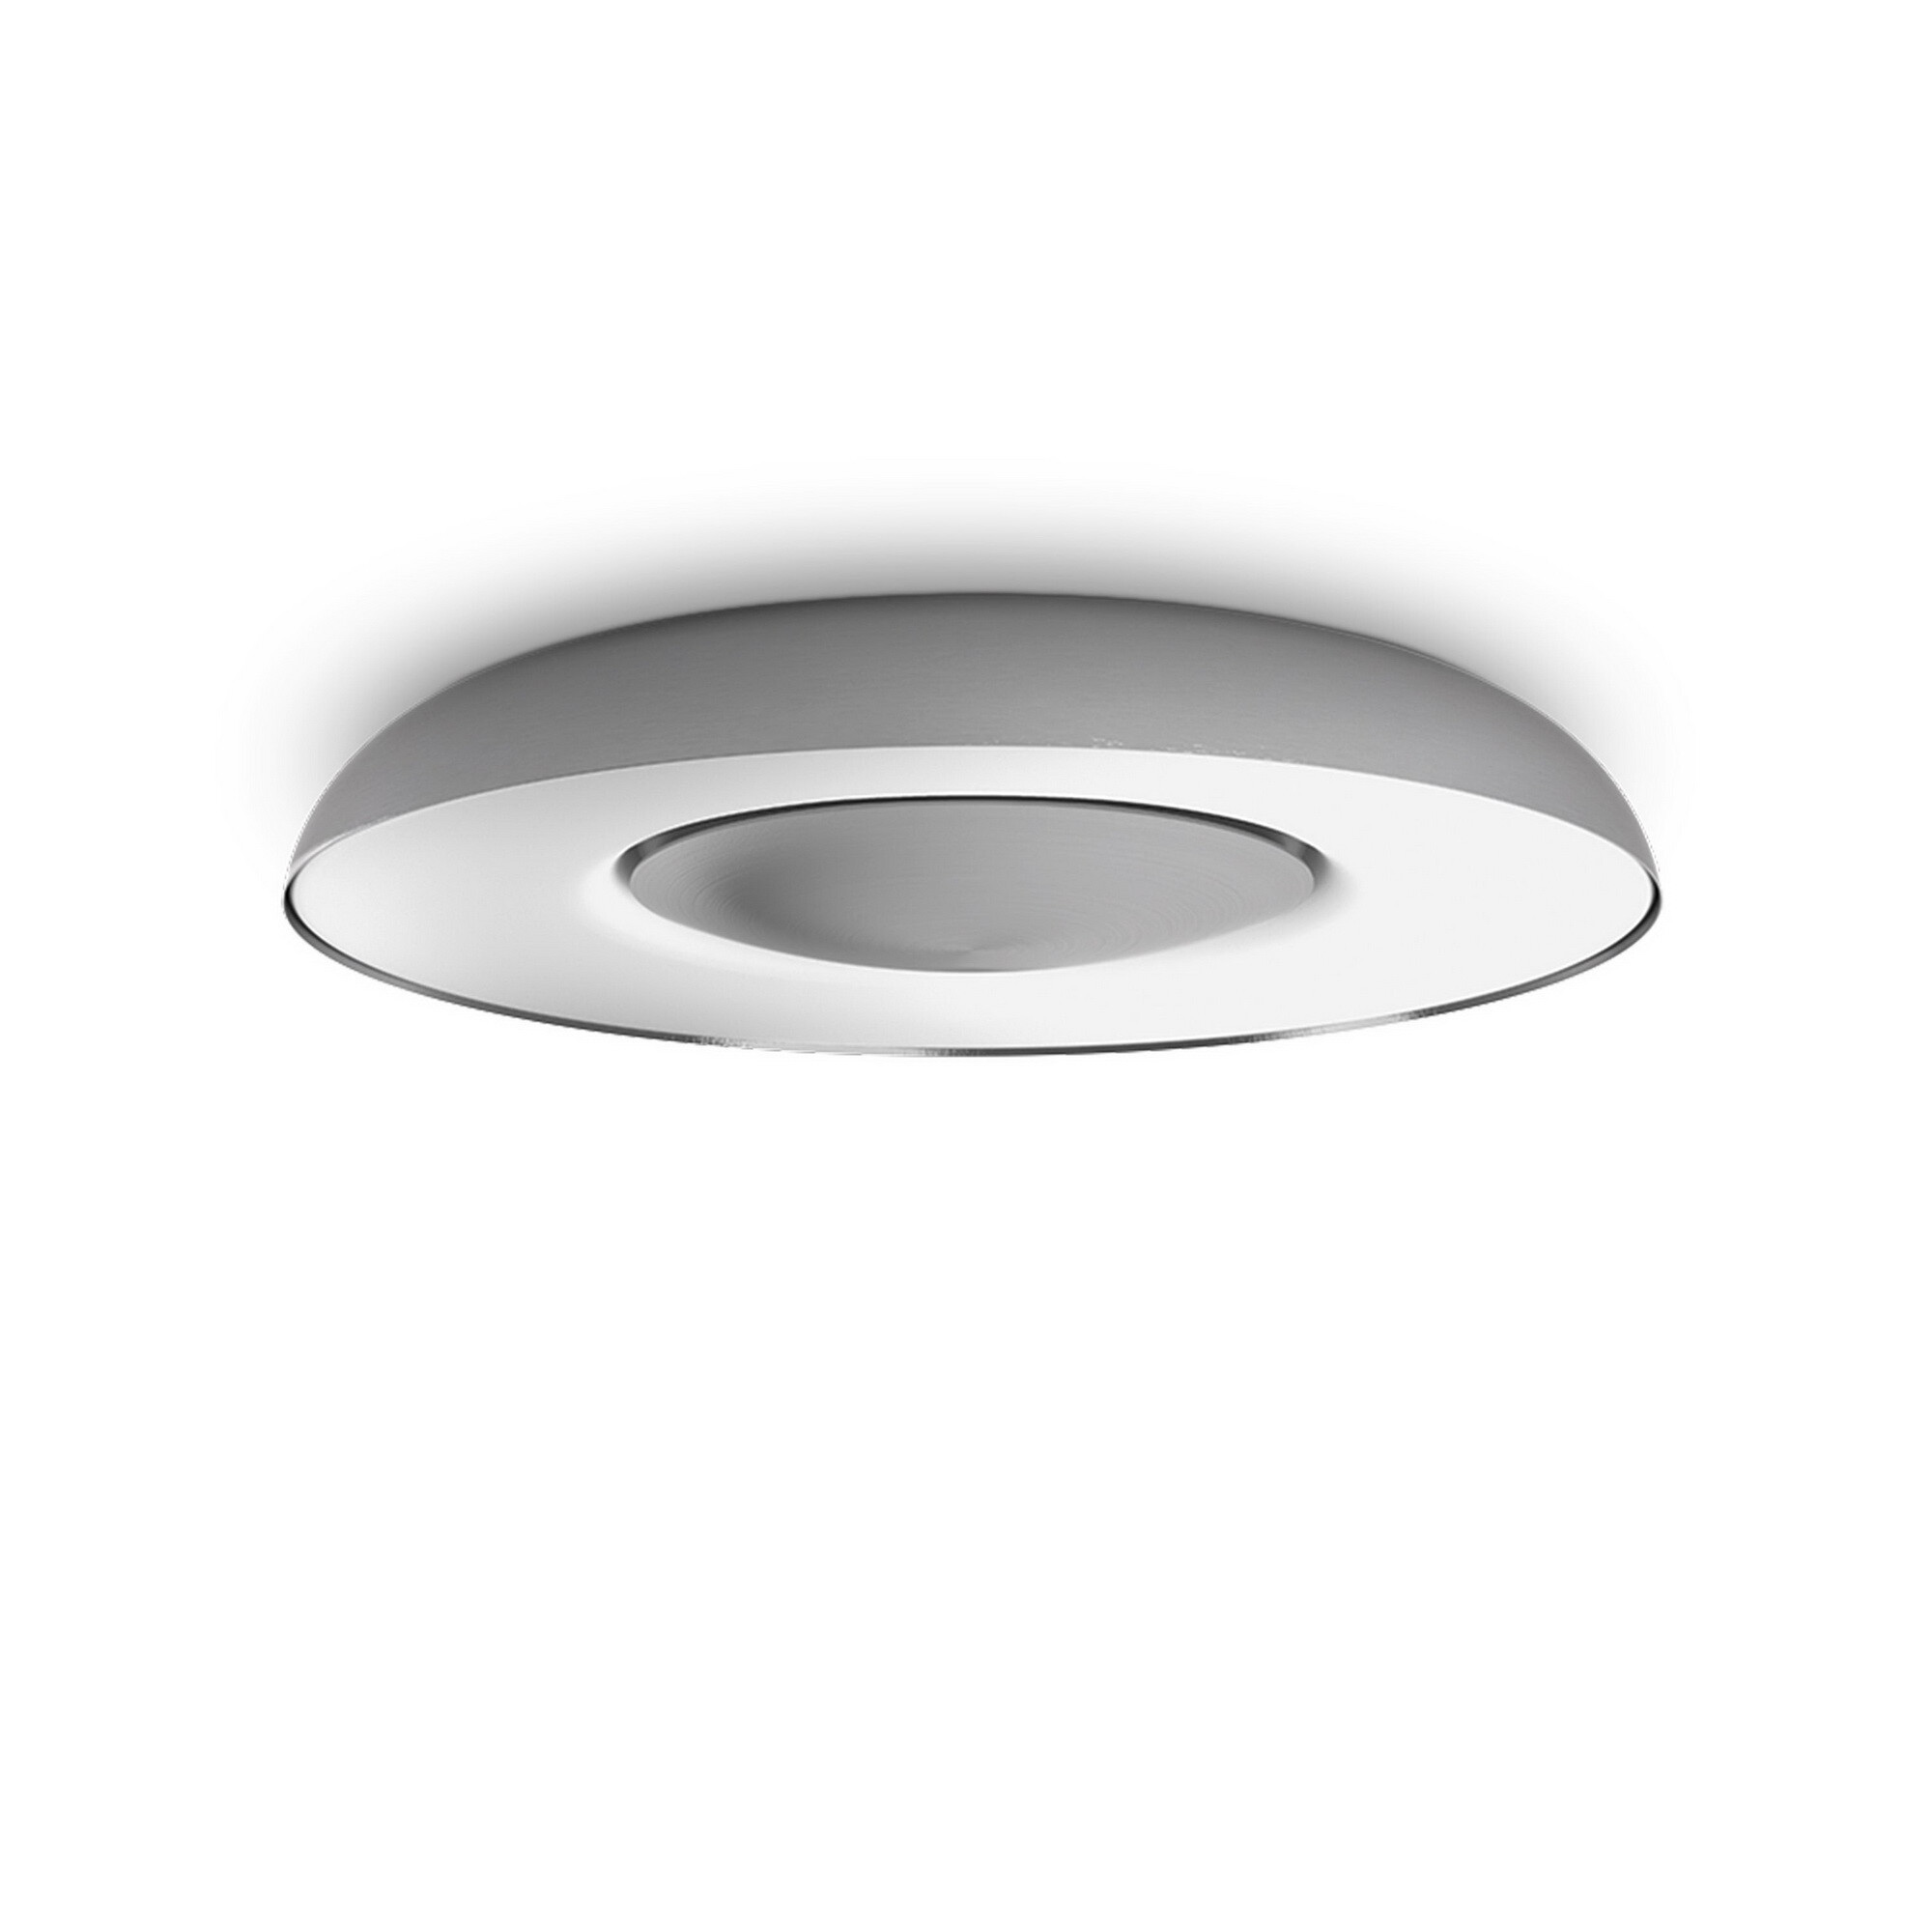 Philips HUE STILL Plafonnier LED 1x32W/2400lm Argent